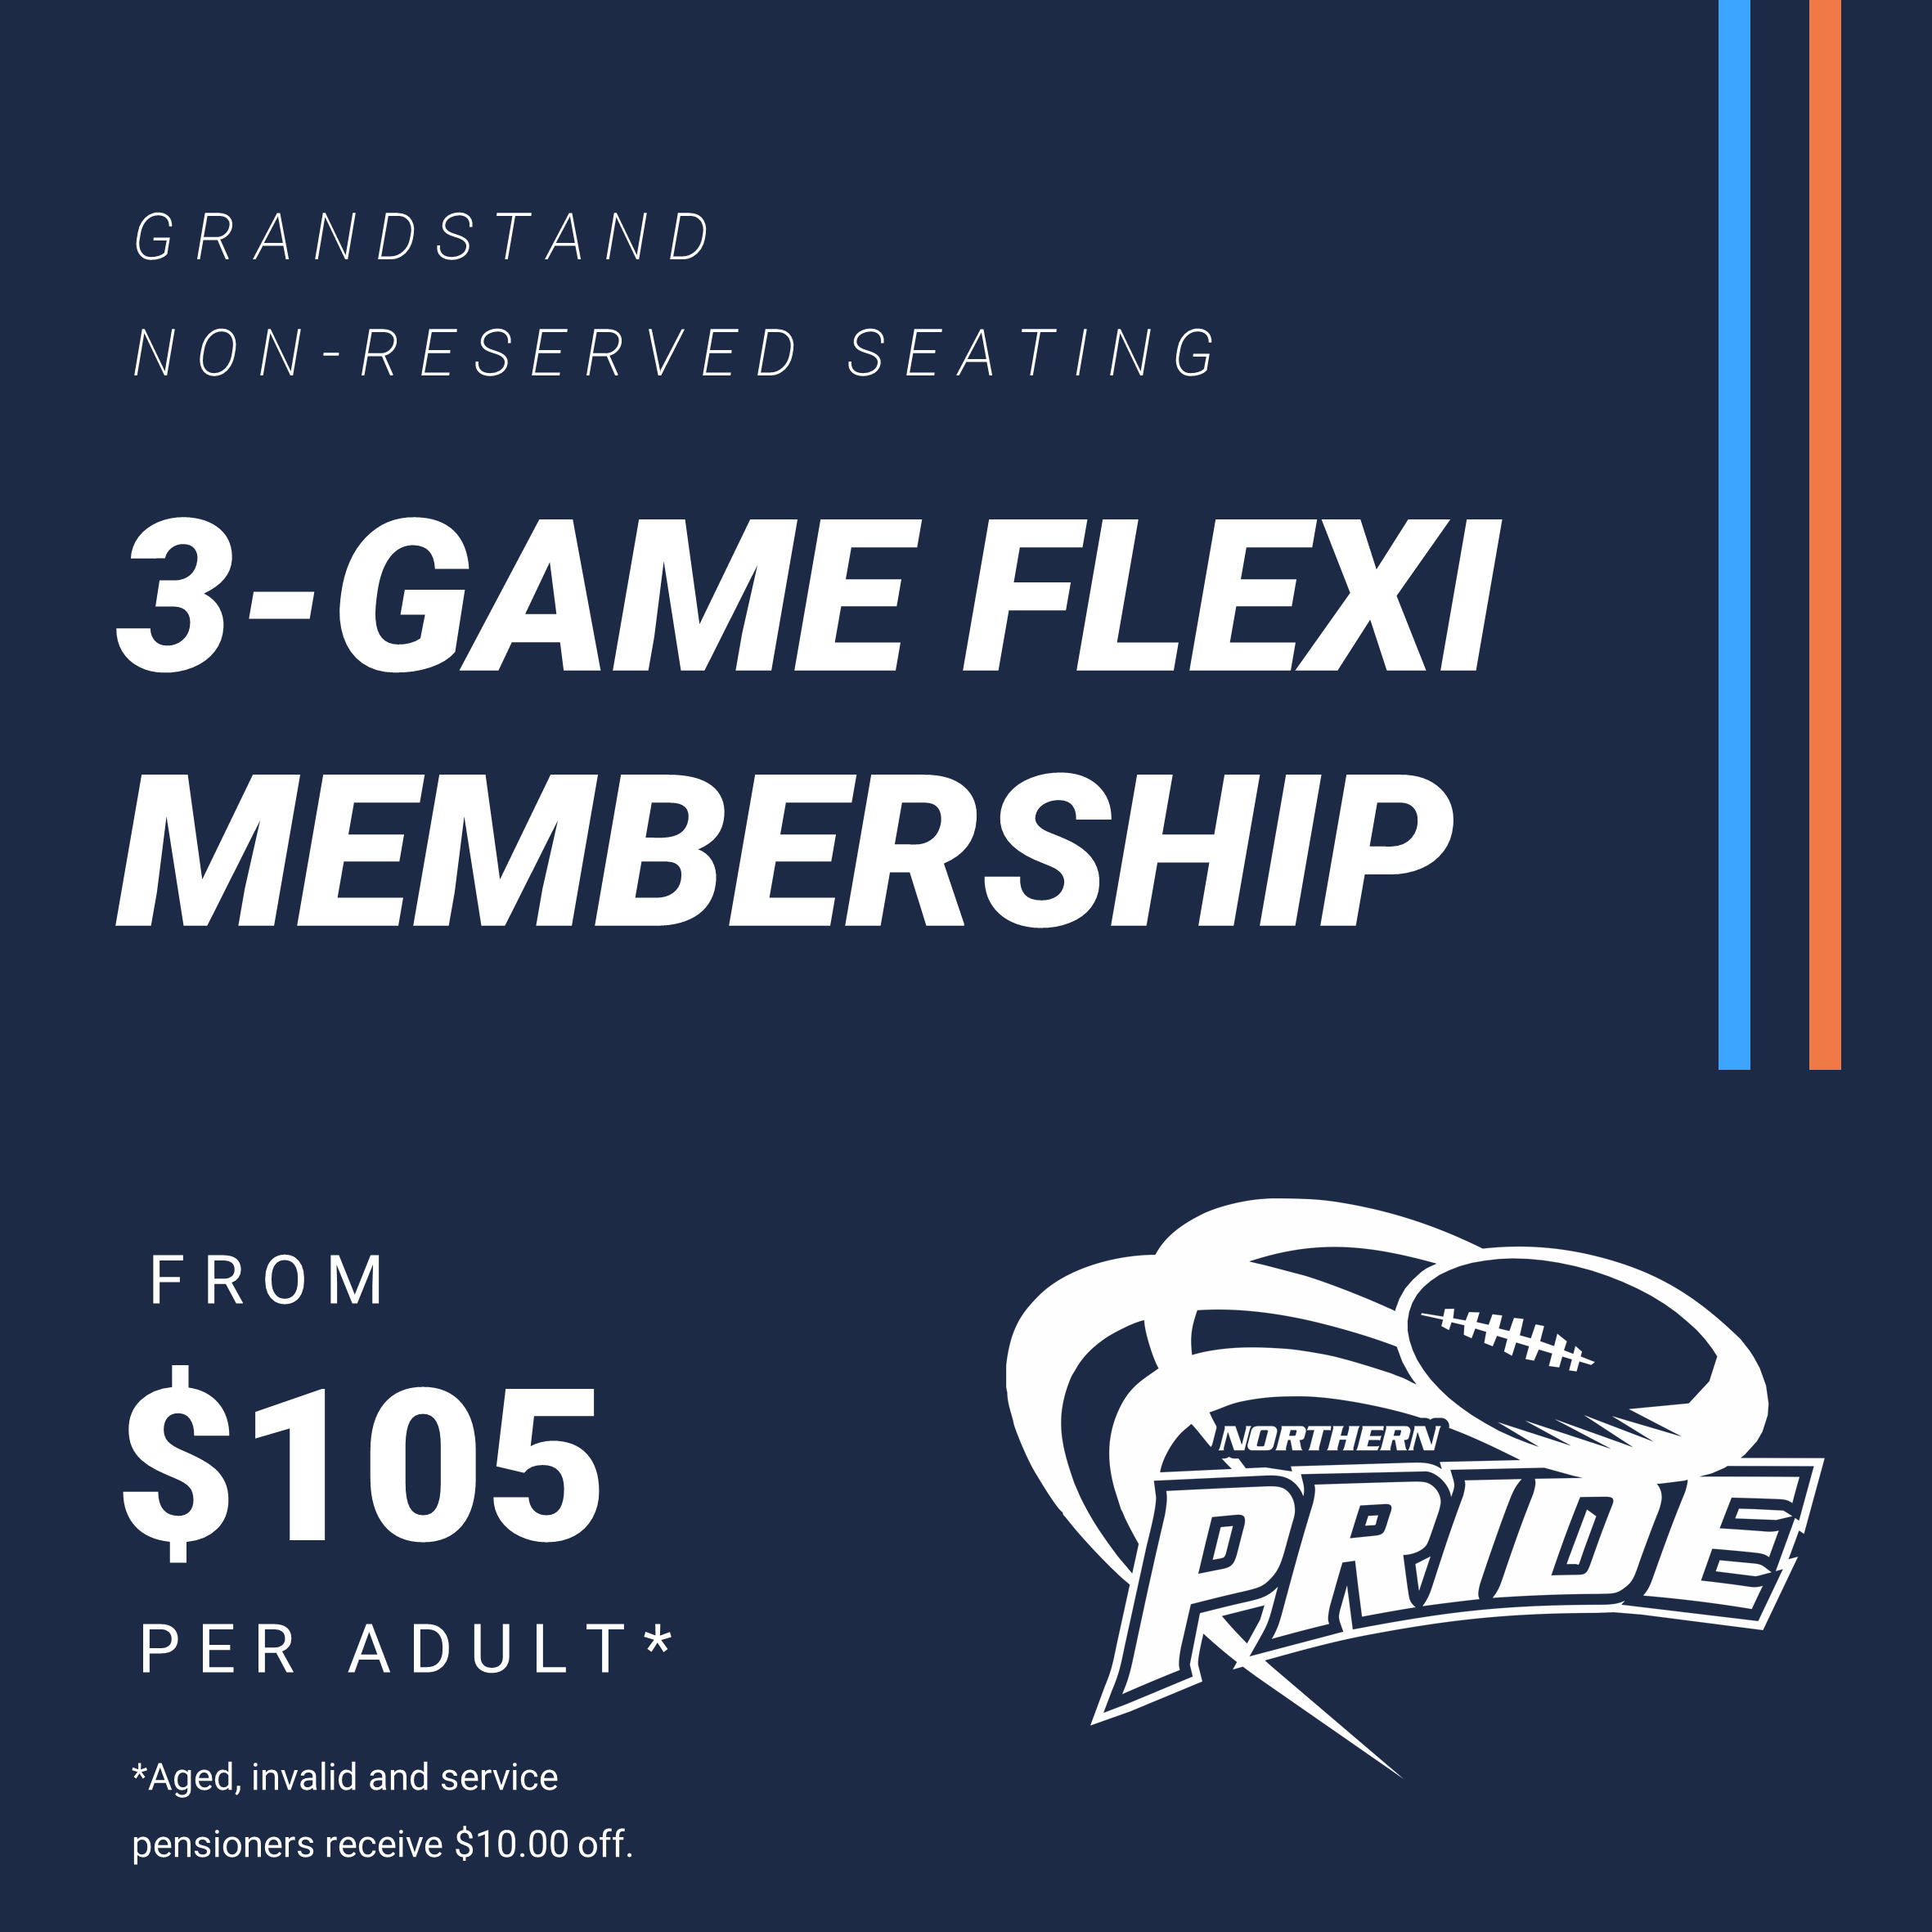 Adult 3-Game Flexi Membership – Ages 16+